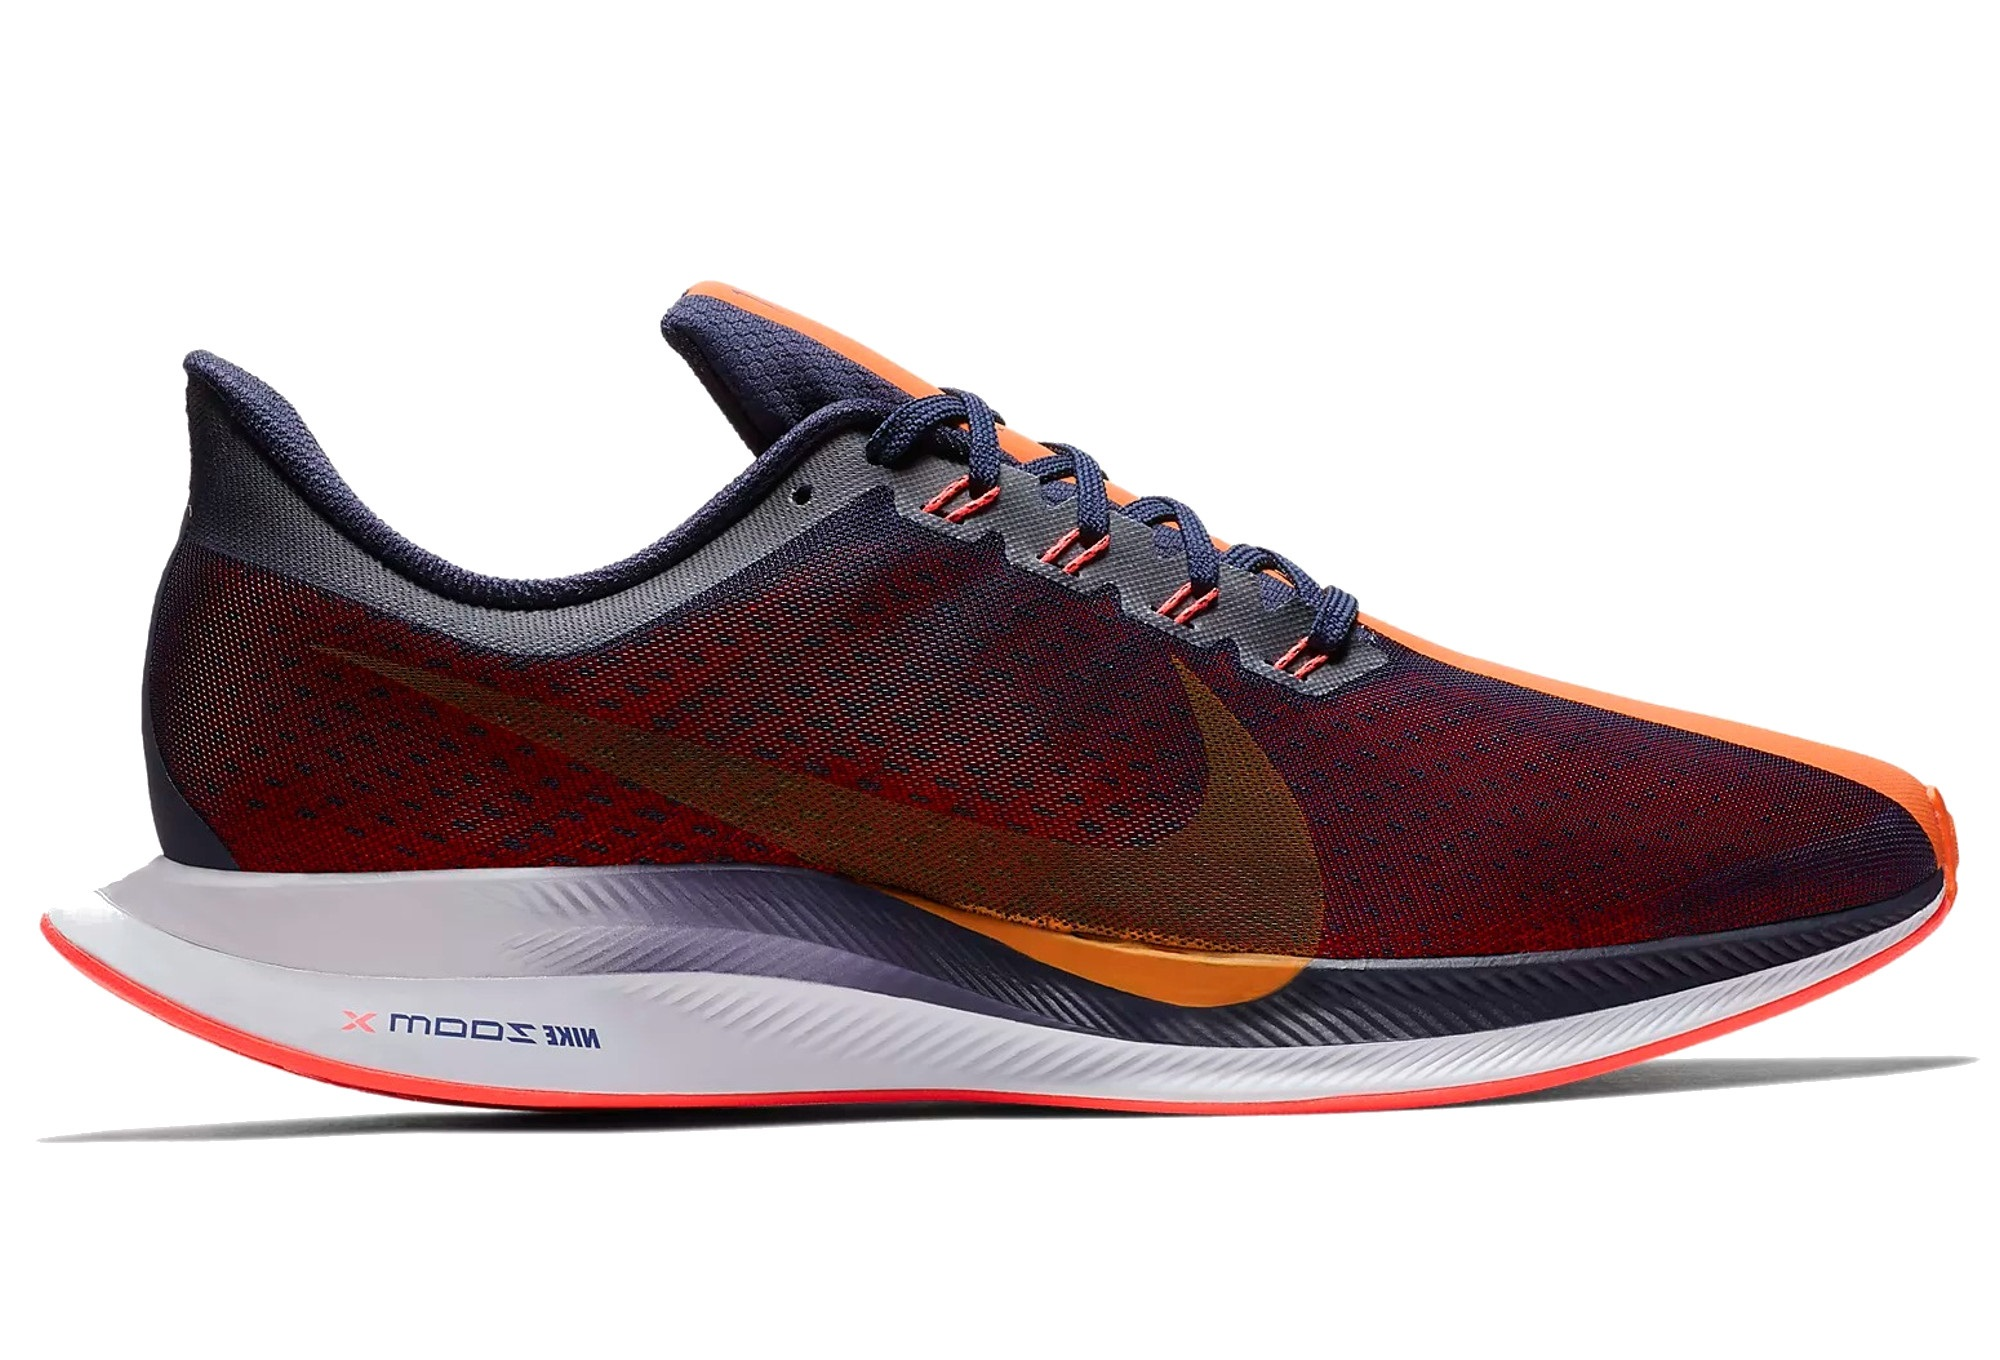 b719e553175ba Nike Shoes Zoom Pegasus Turbo Blue Purple Orange Men